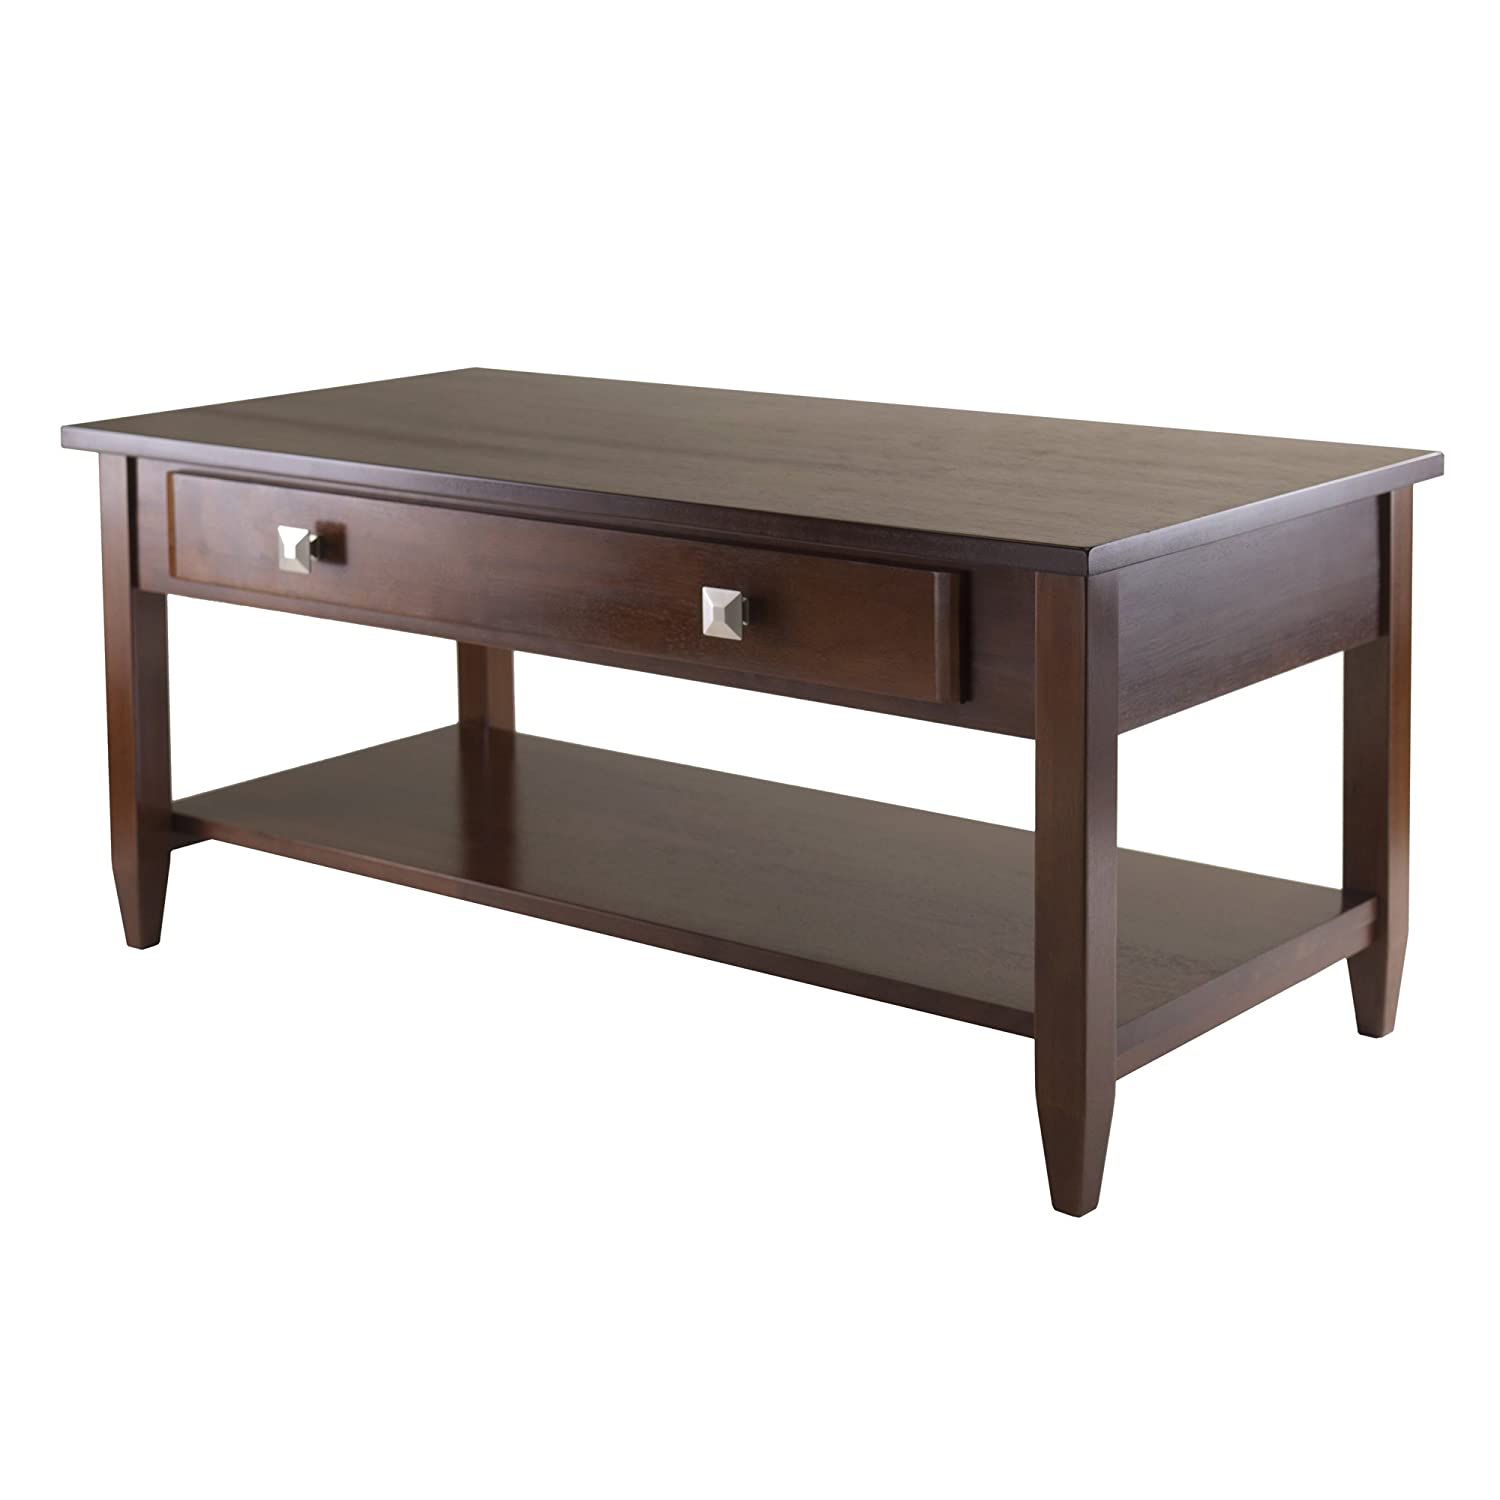 Winsome Wood Richmond Coffee Table with Tapered Leg 94140